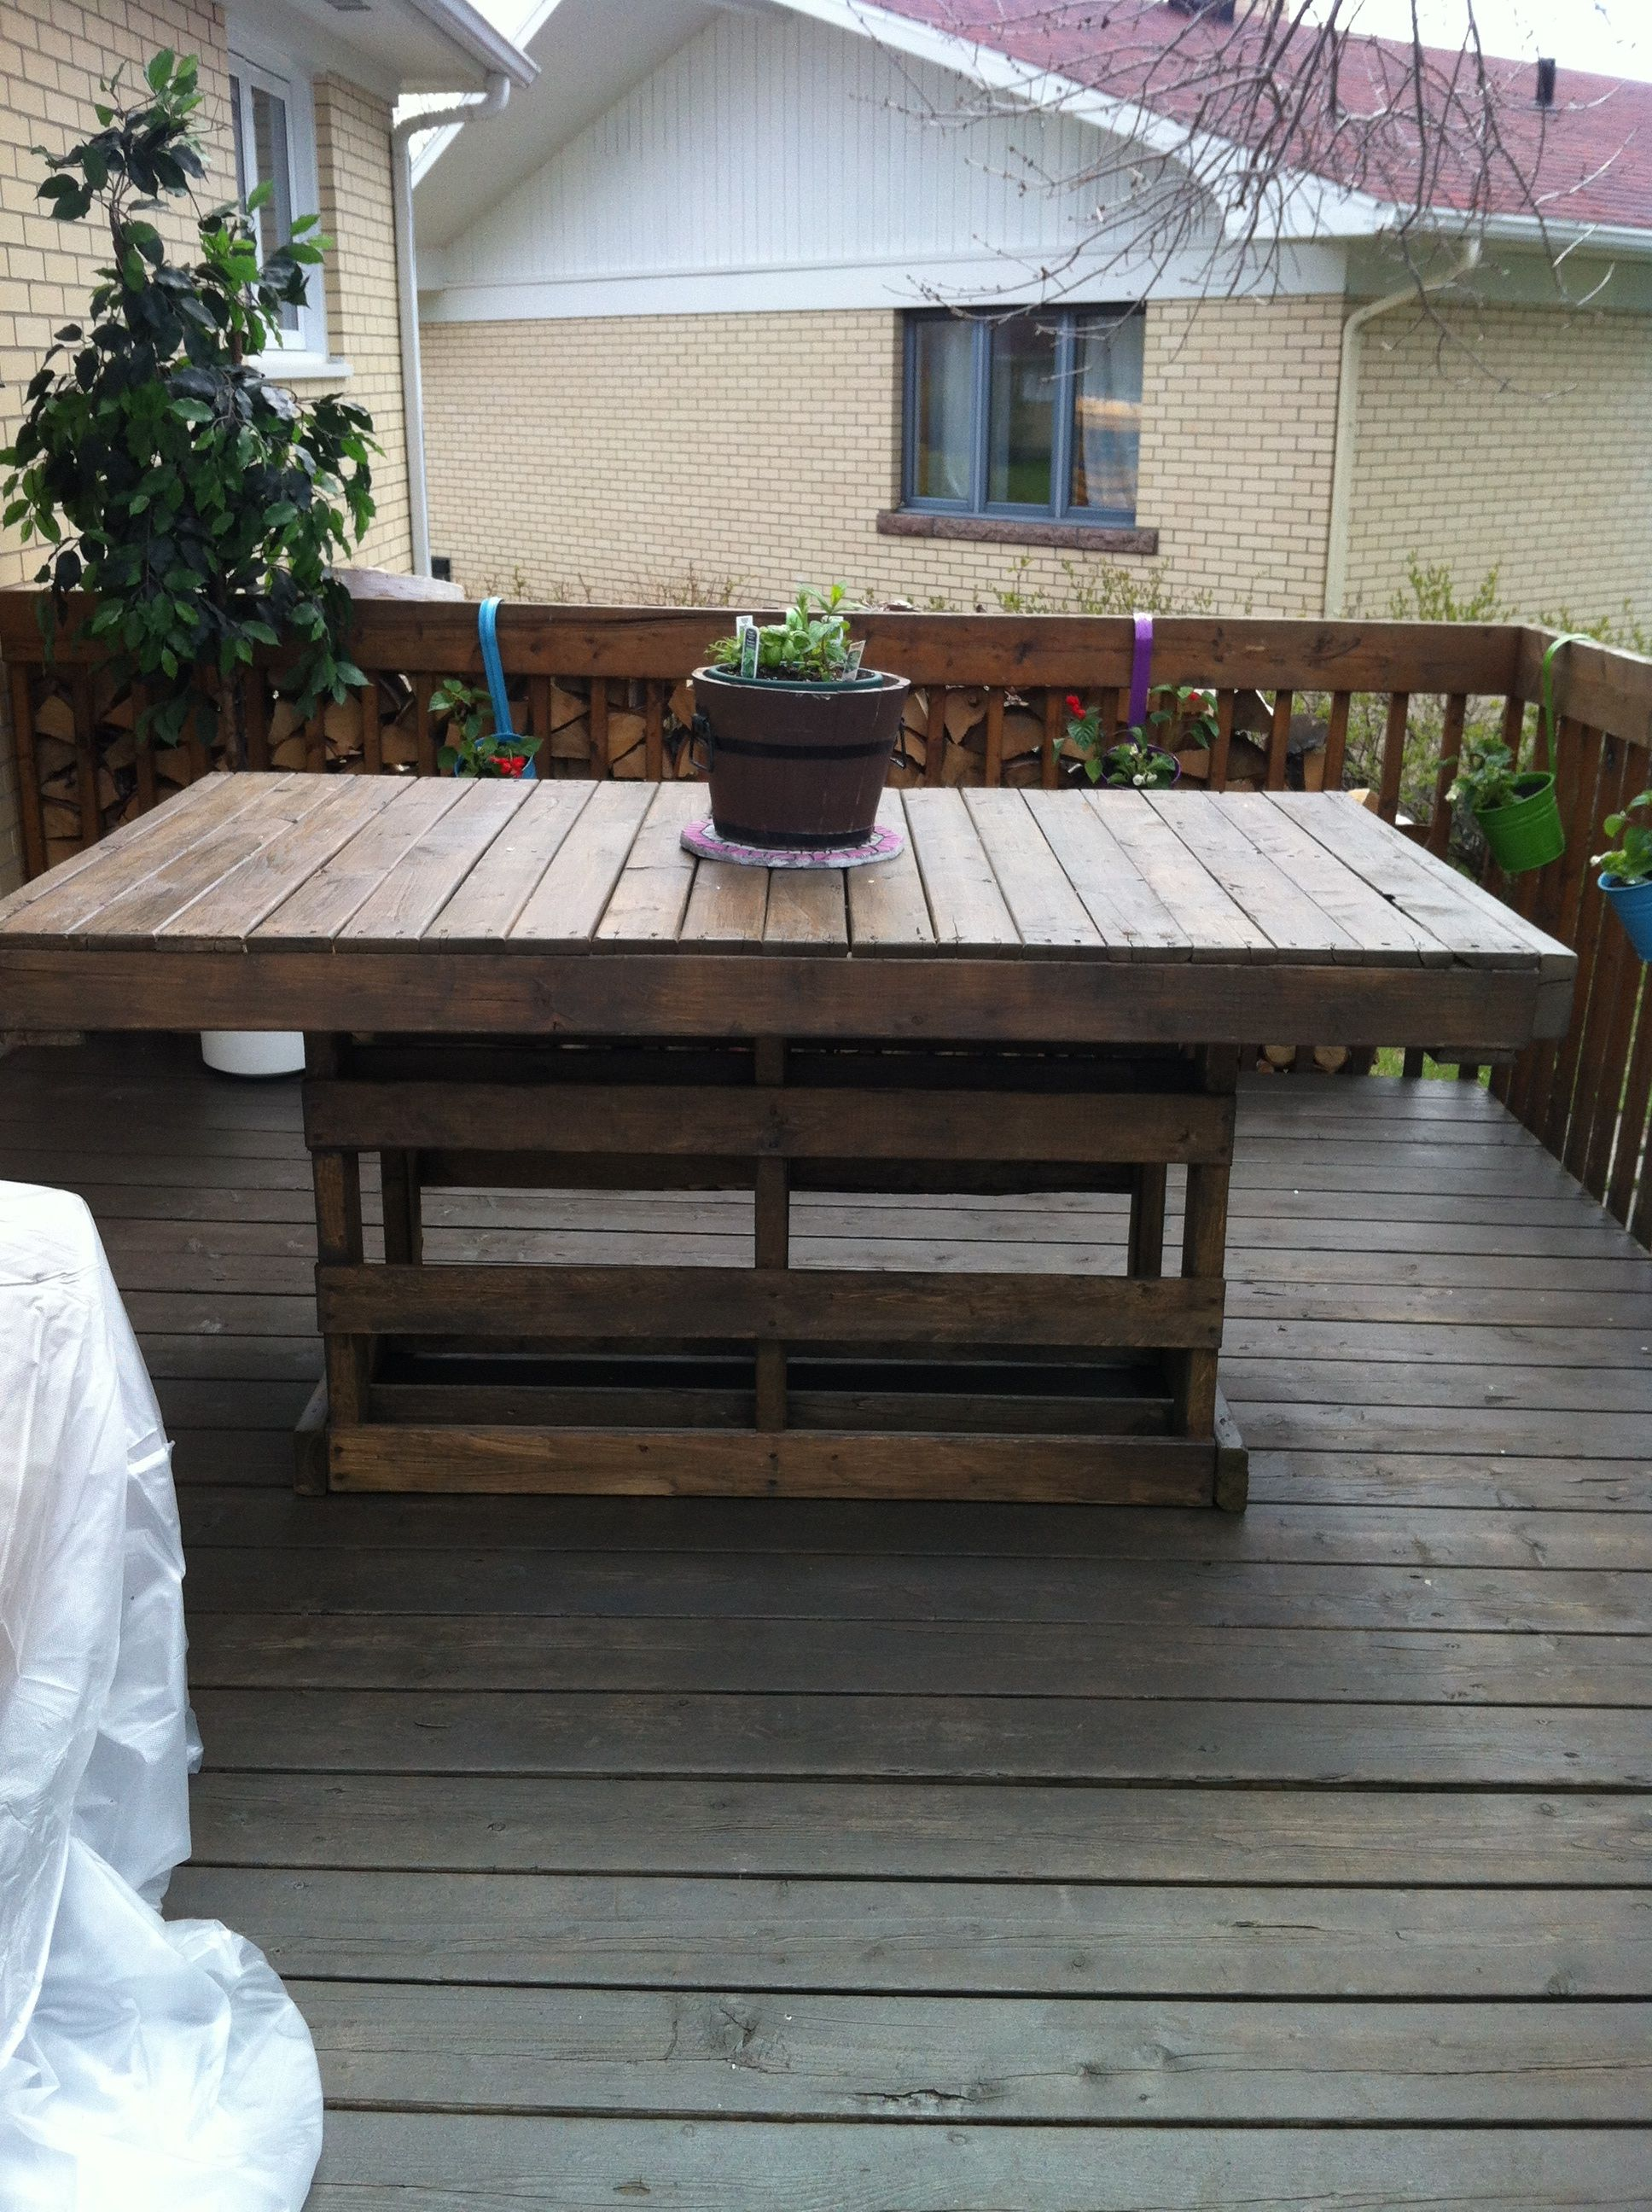 Patio Pallet Table Pallet Patio Furniture Pallet Table